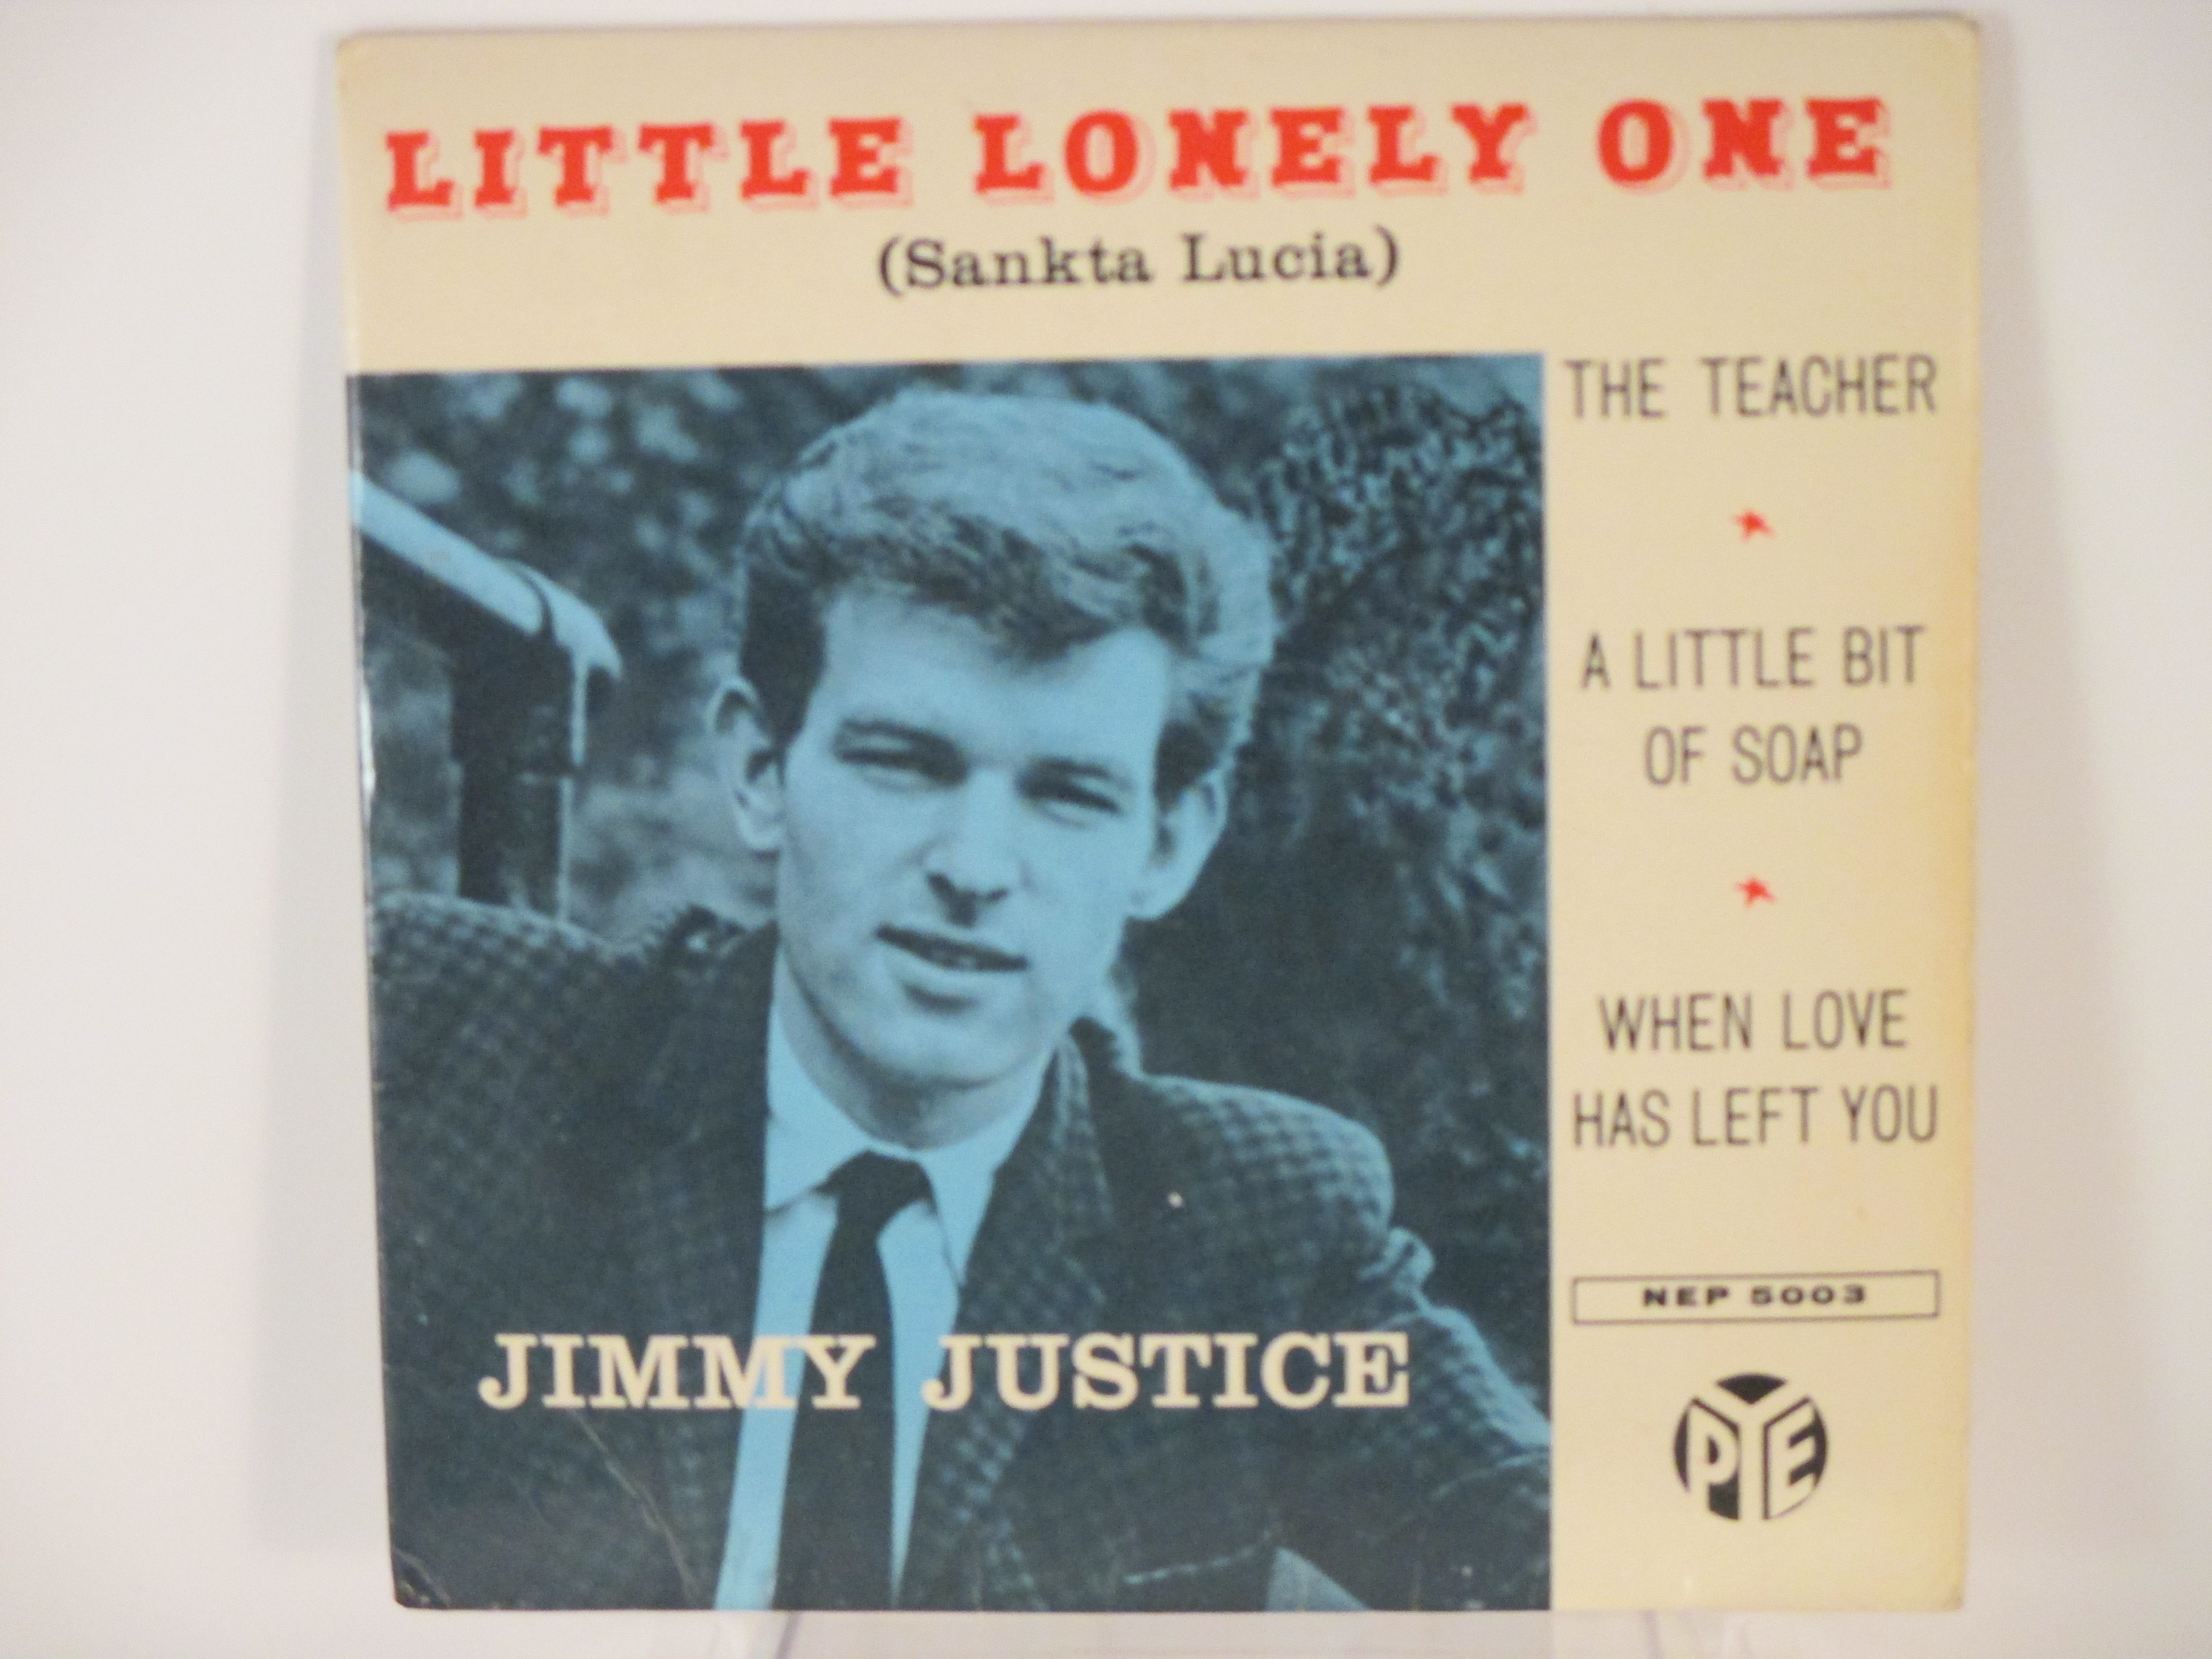 JIMMY JUSTICE : (EP) Little lonely one (Sankta Lucia) / The teacher / A little bit of soap / When love has left you